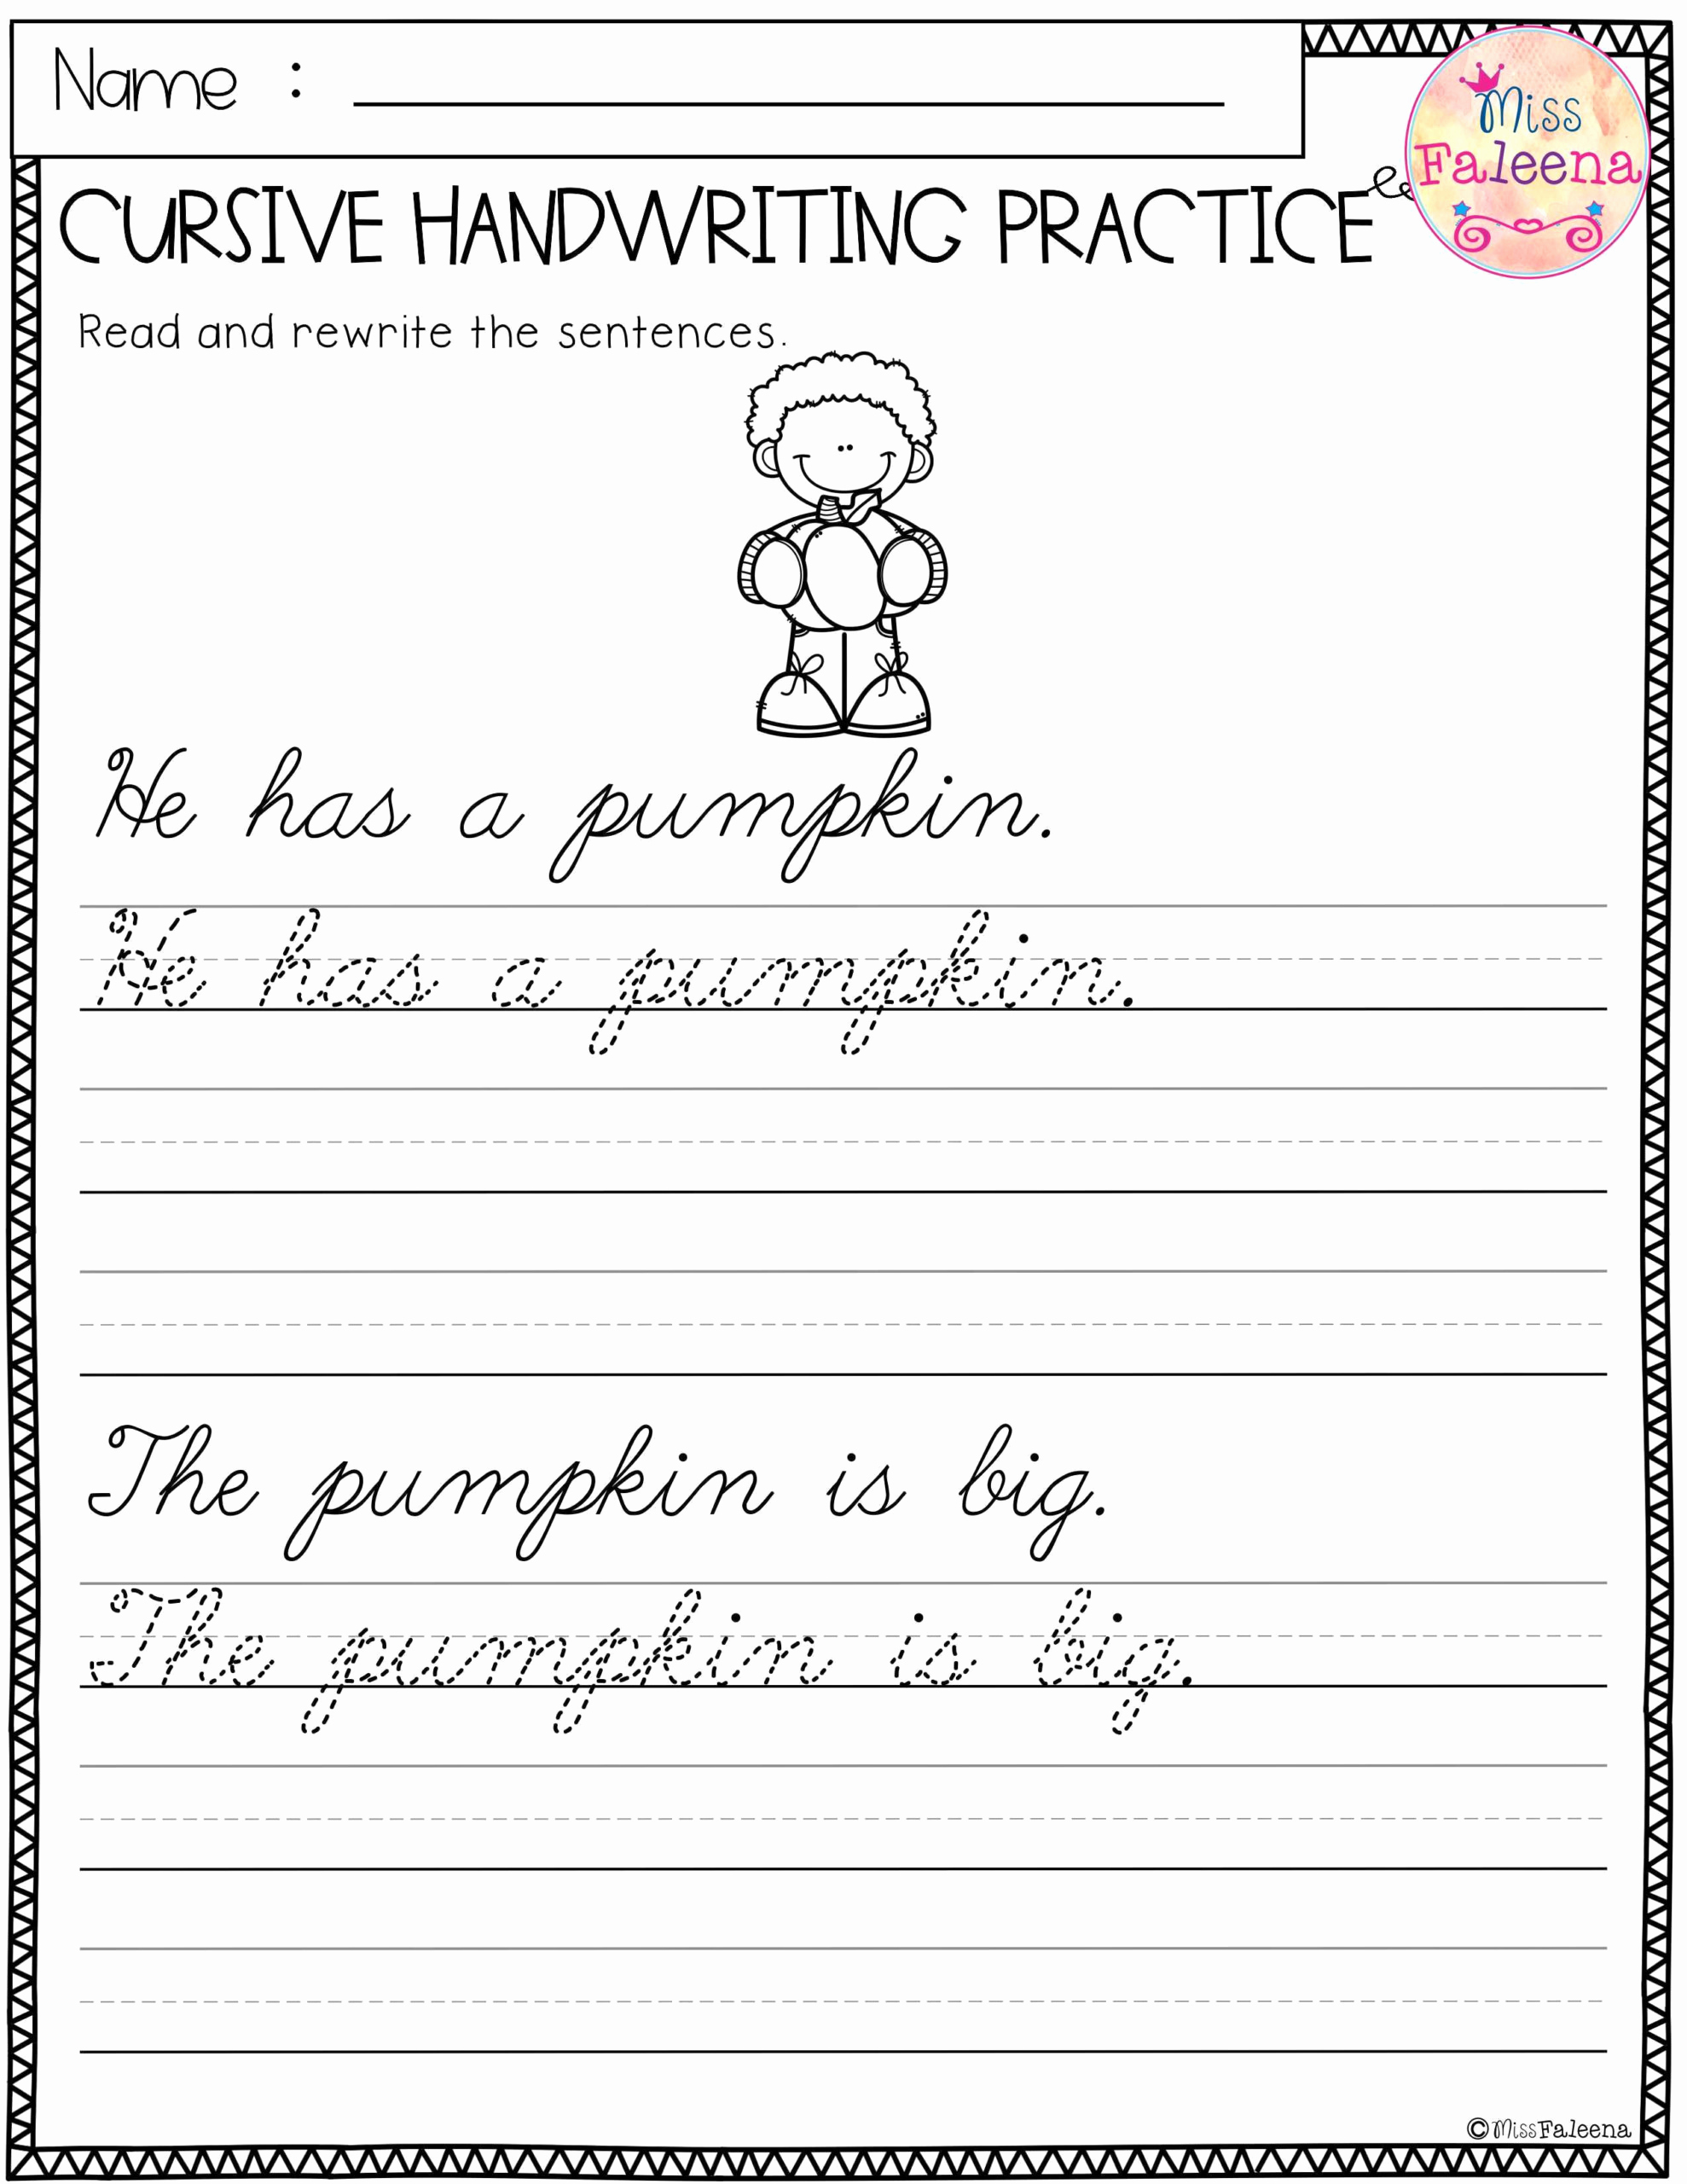 Free Paragraph Writing Worksheets Awesome Free Cursive Writing Paragraph Worksheets